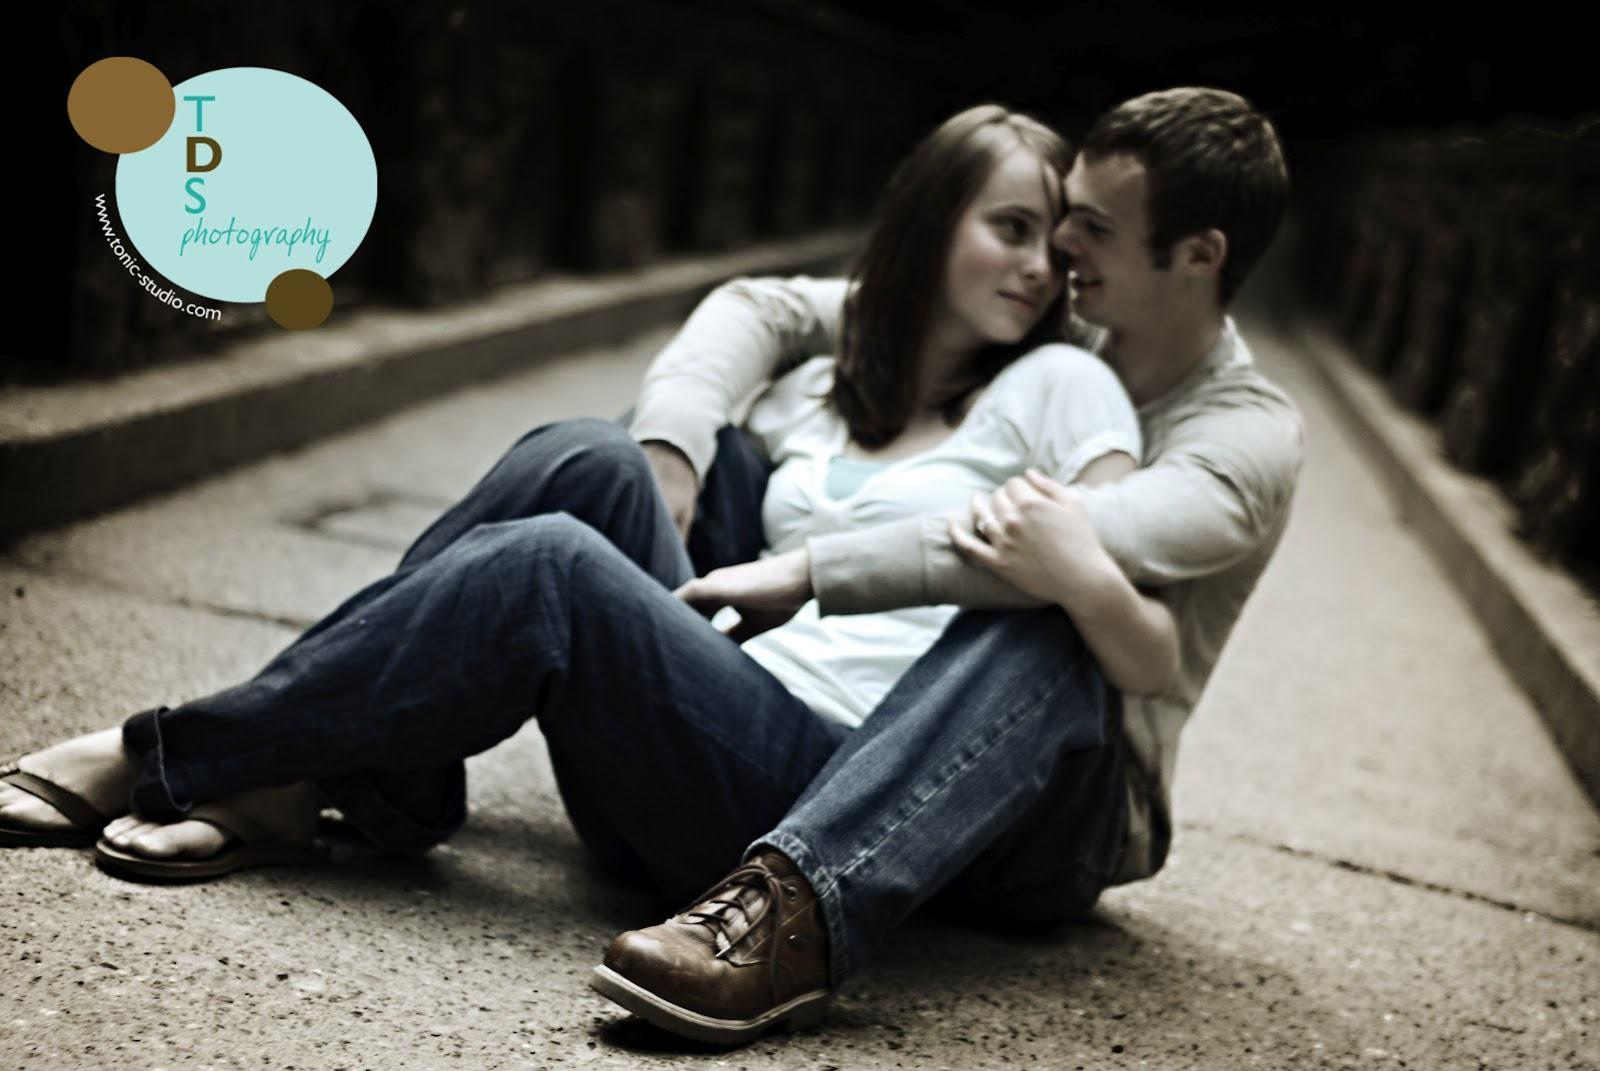 Hd Love Couples Wallpapers Group 83: Kissing Wallpapers